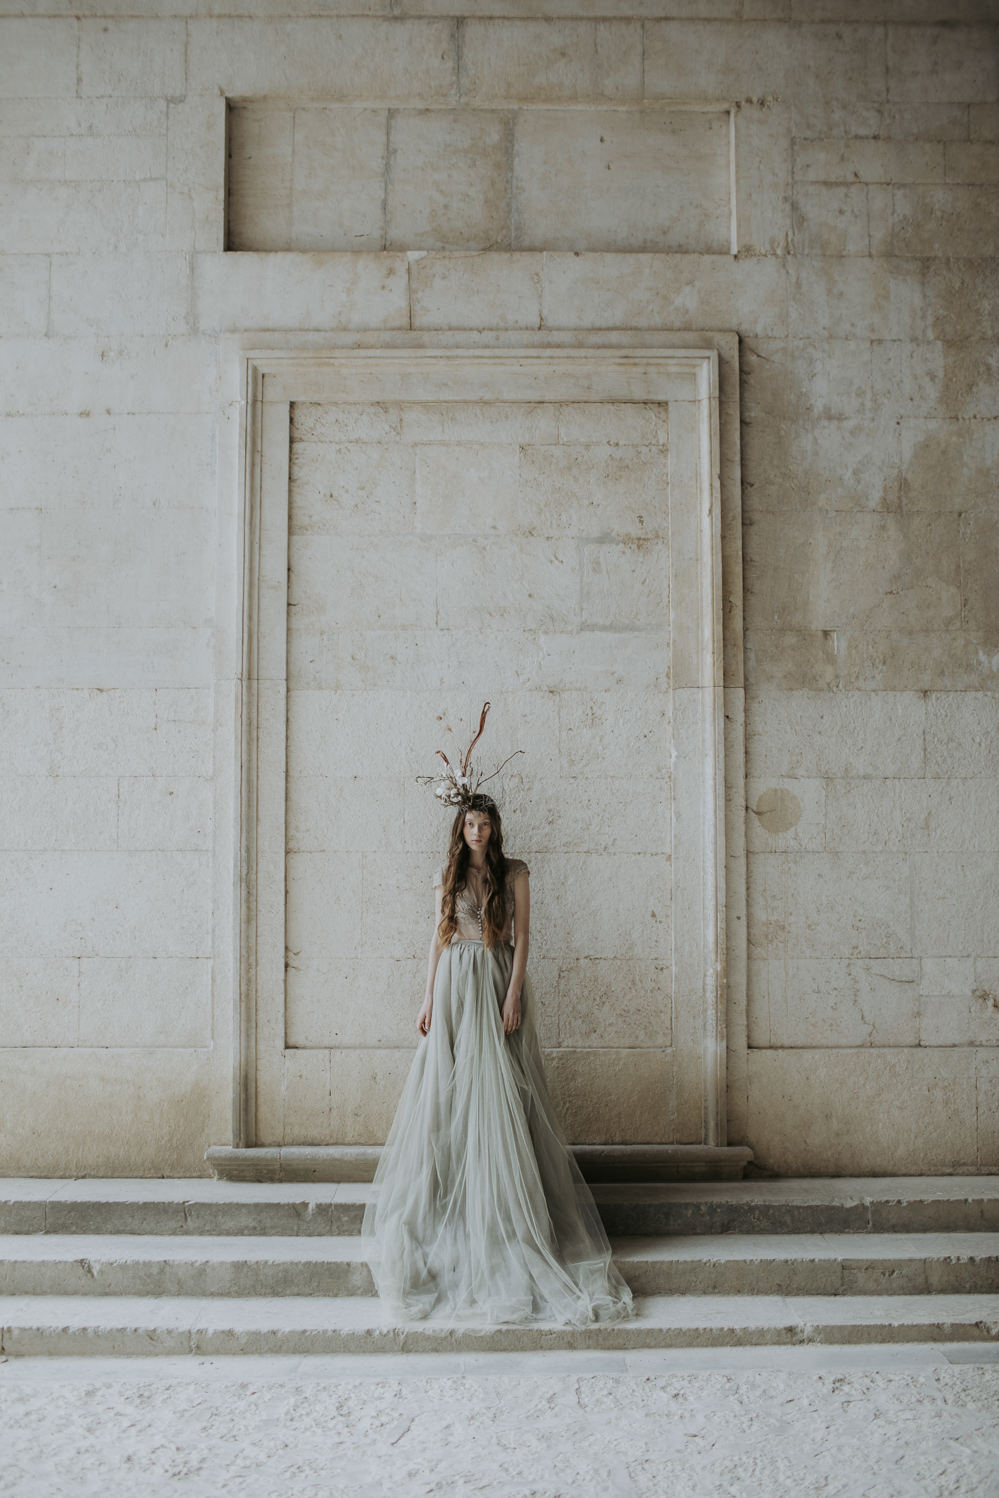 Dress Gown Bride Bridal Grey Lace Buttons Tulle Skirt Train Cave Wedding Ideas Vanessa Illi Photographer